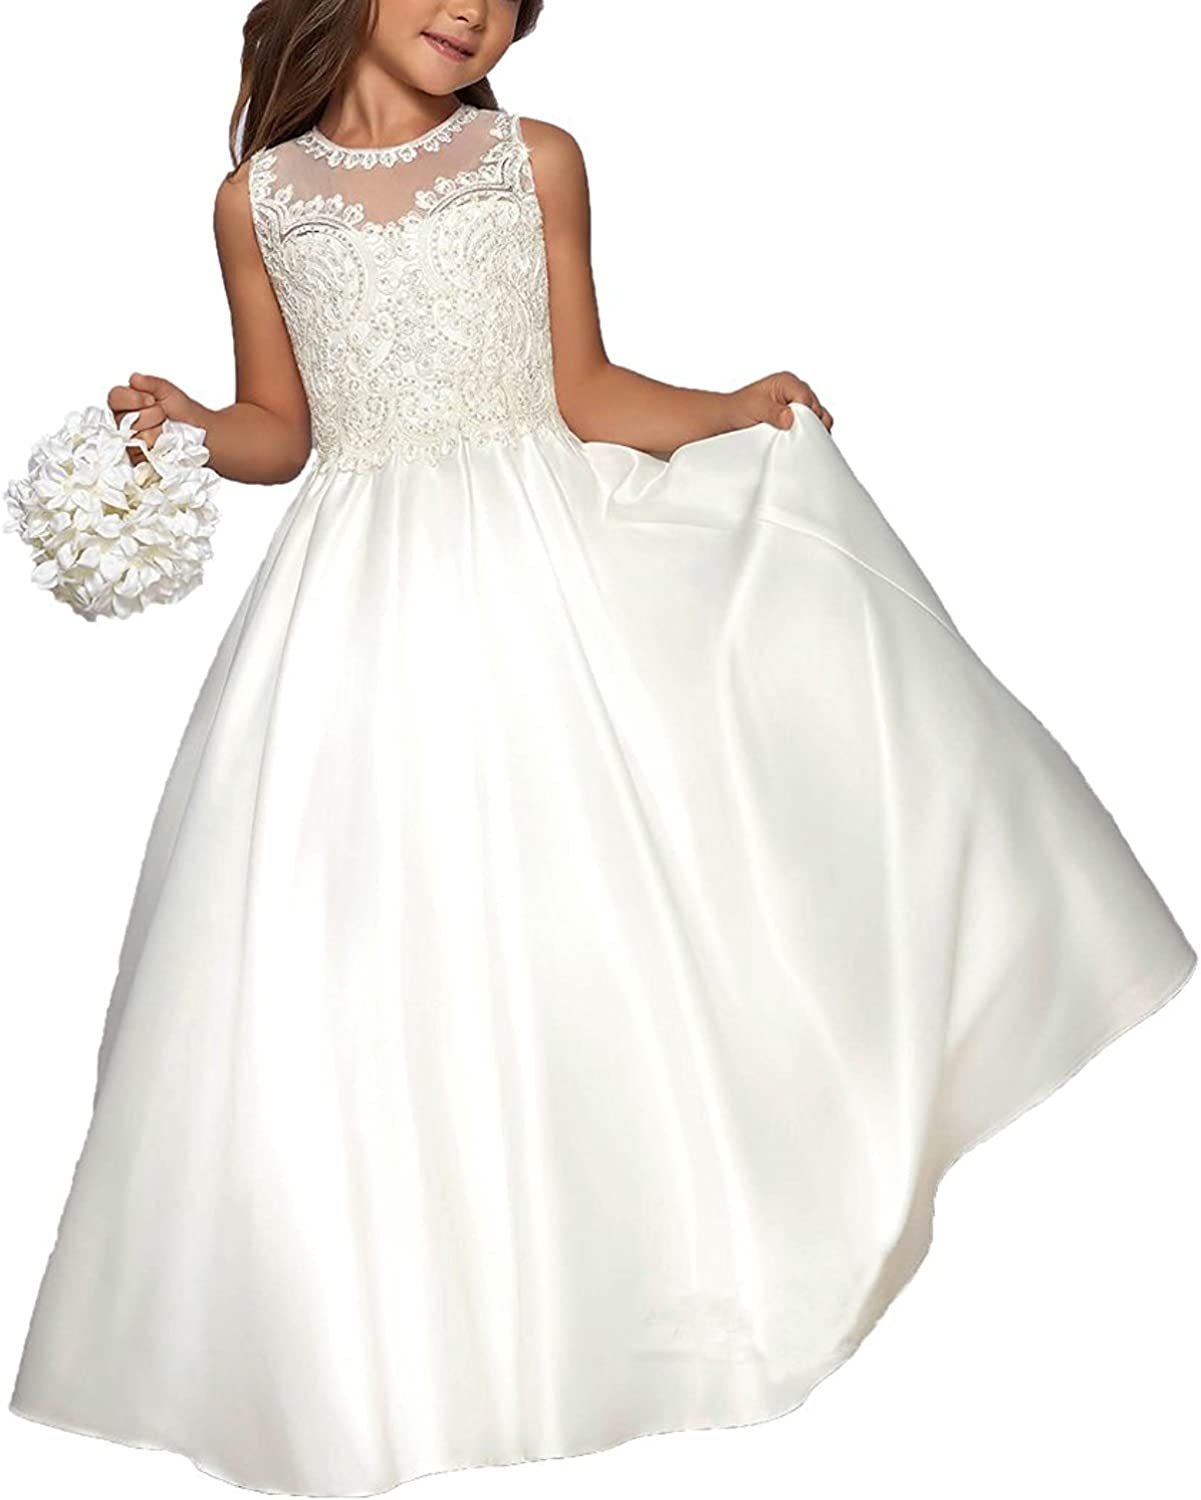 Elegant Flower Girls Dresses Lace Pageant Ball Gown